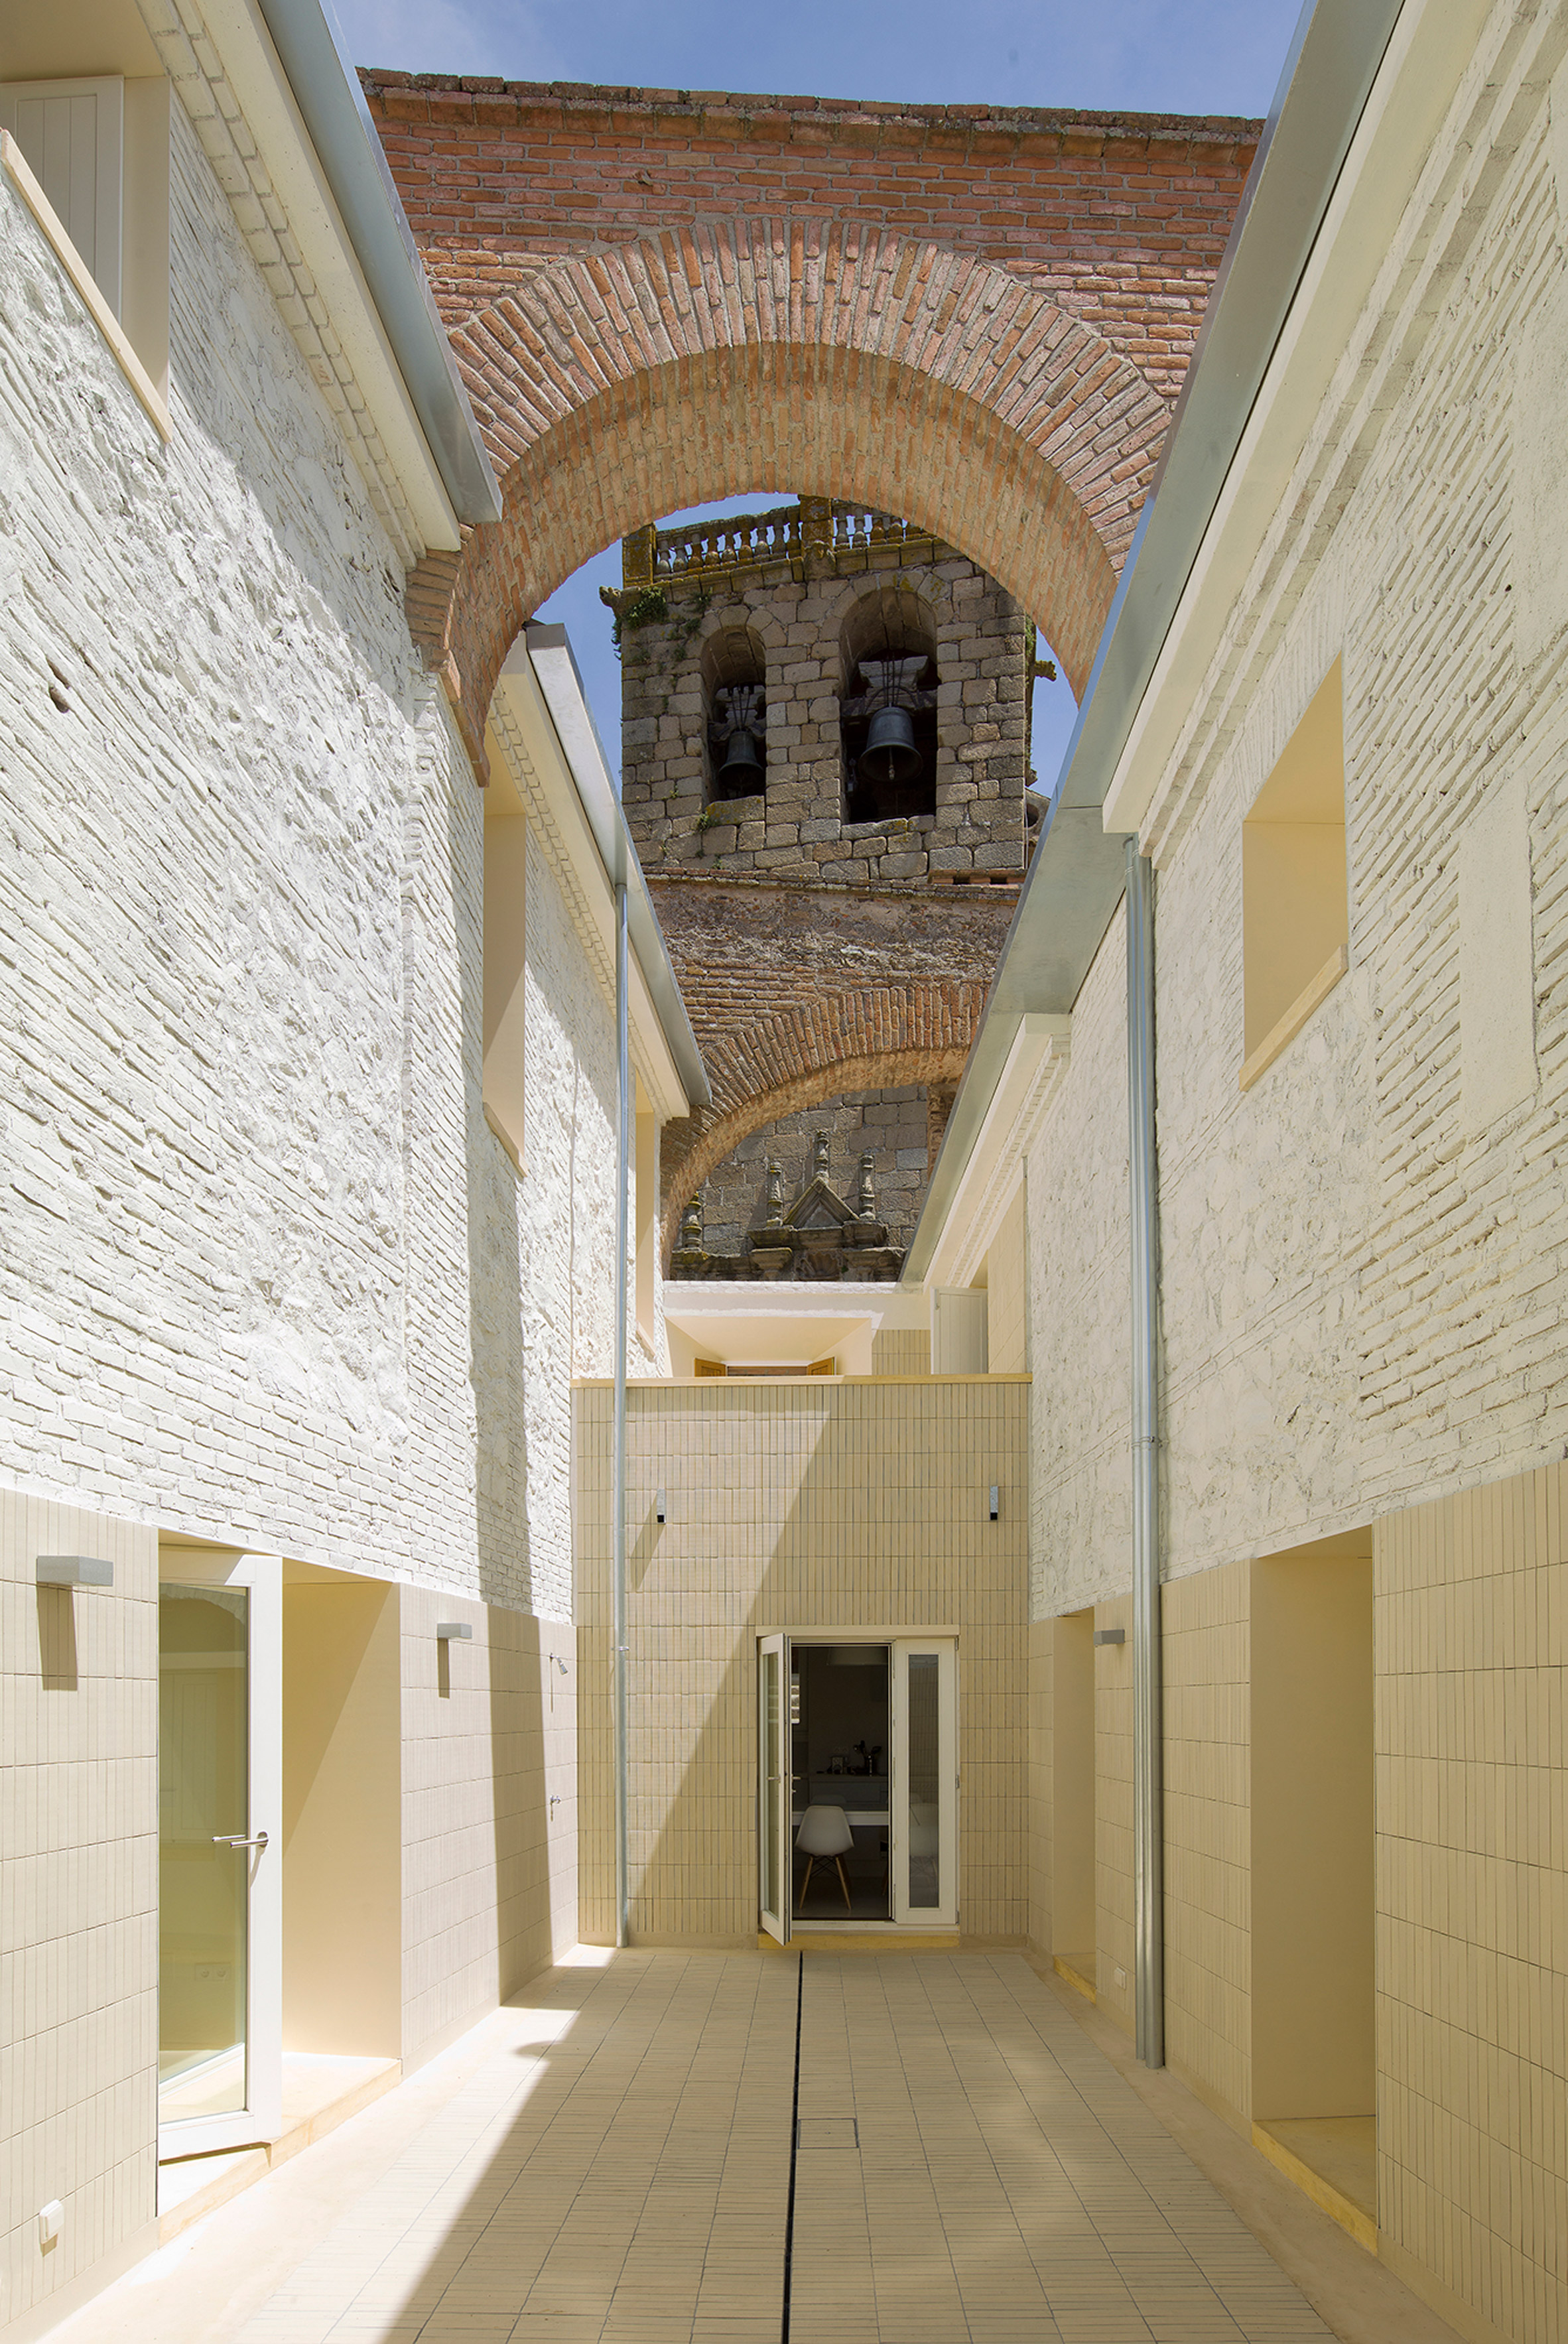 Paredes Pedrosa Arquitectos transforms ruined buildings within walls of Spanish castle